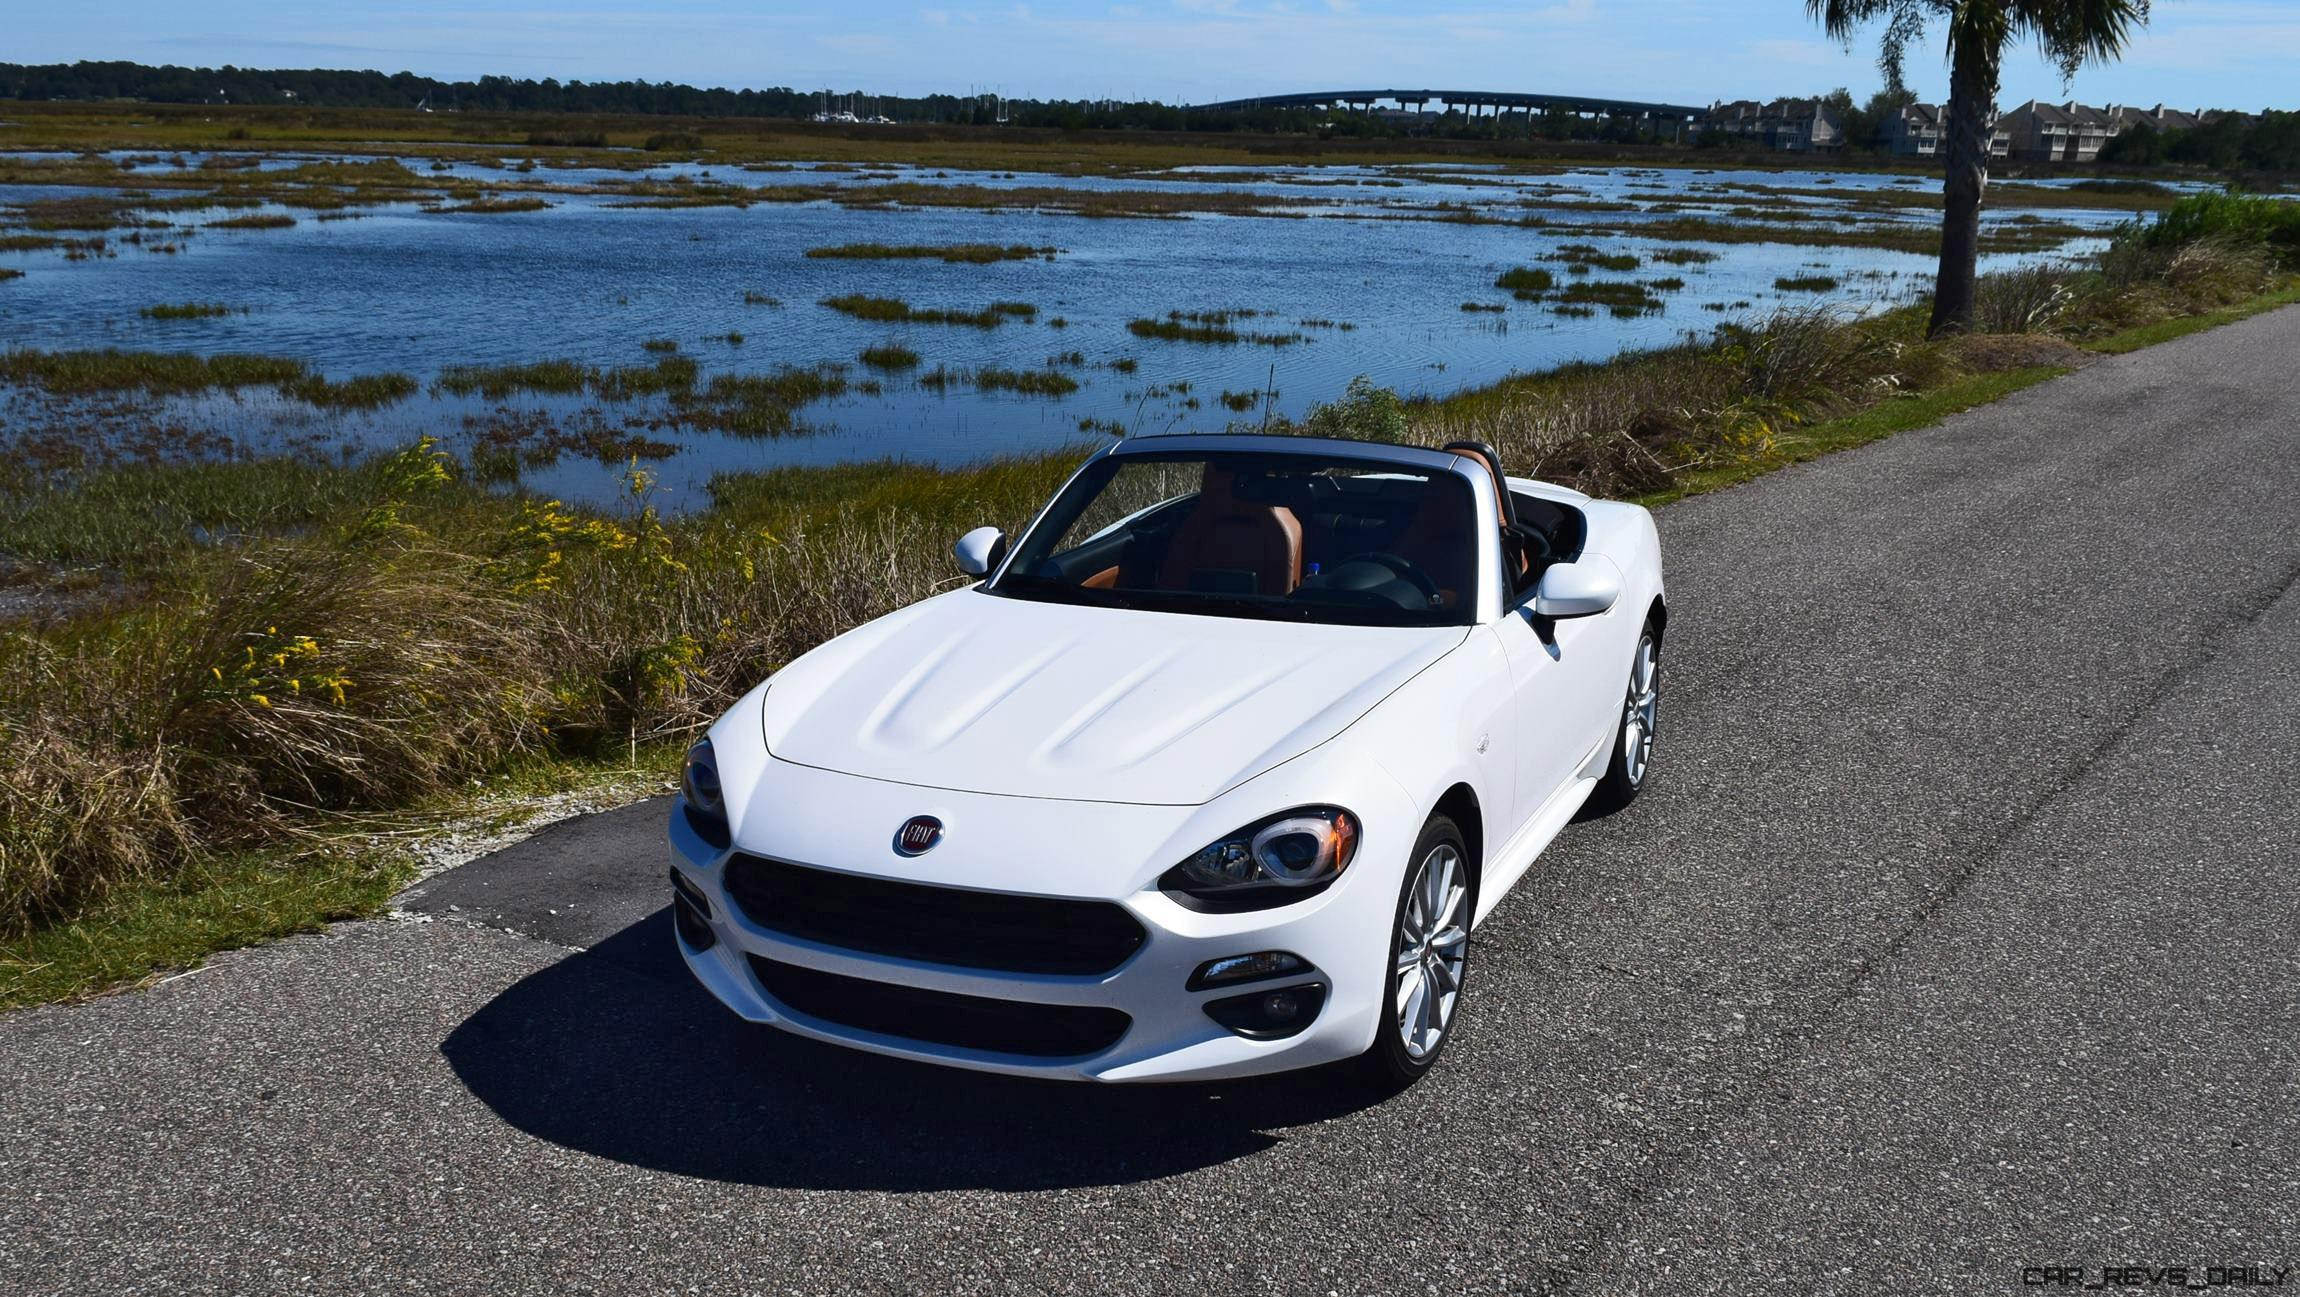 2017 fiat 124 spider road test review hd drive video. Black Bedroom Furniture Sets. Home Design Ideas